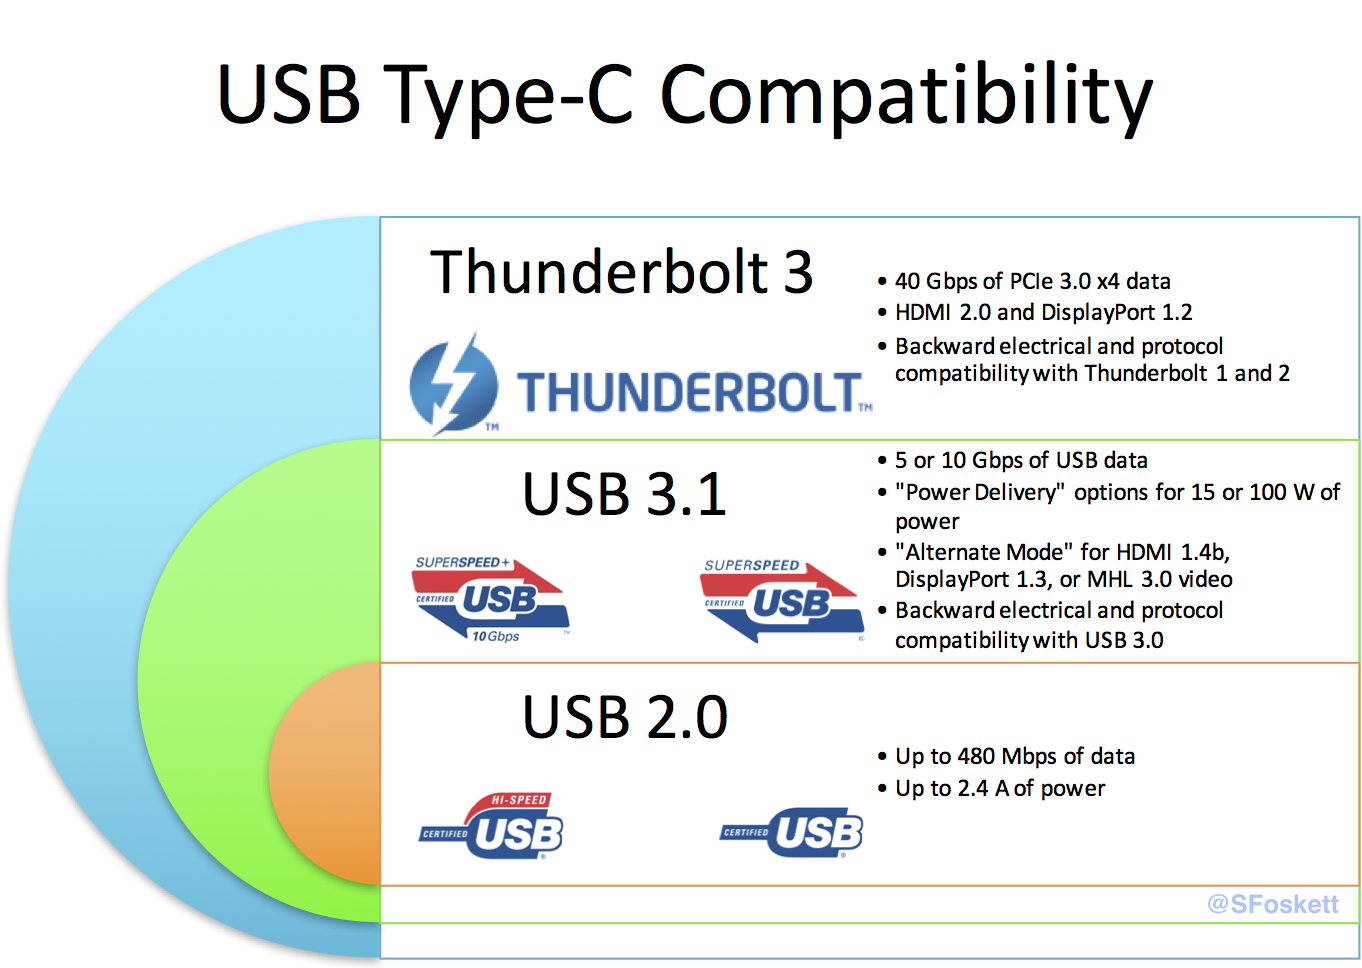 Total Nightmare Usb C And Thunderbolt 3 Stephen Foskett Pack Rat Home Run Cable Wiring As Well Diagram For 9 Pin Serial Port Type Compatibility